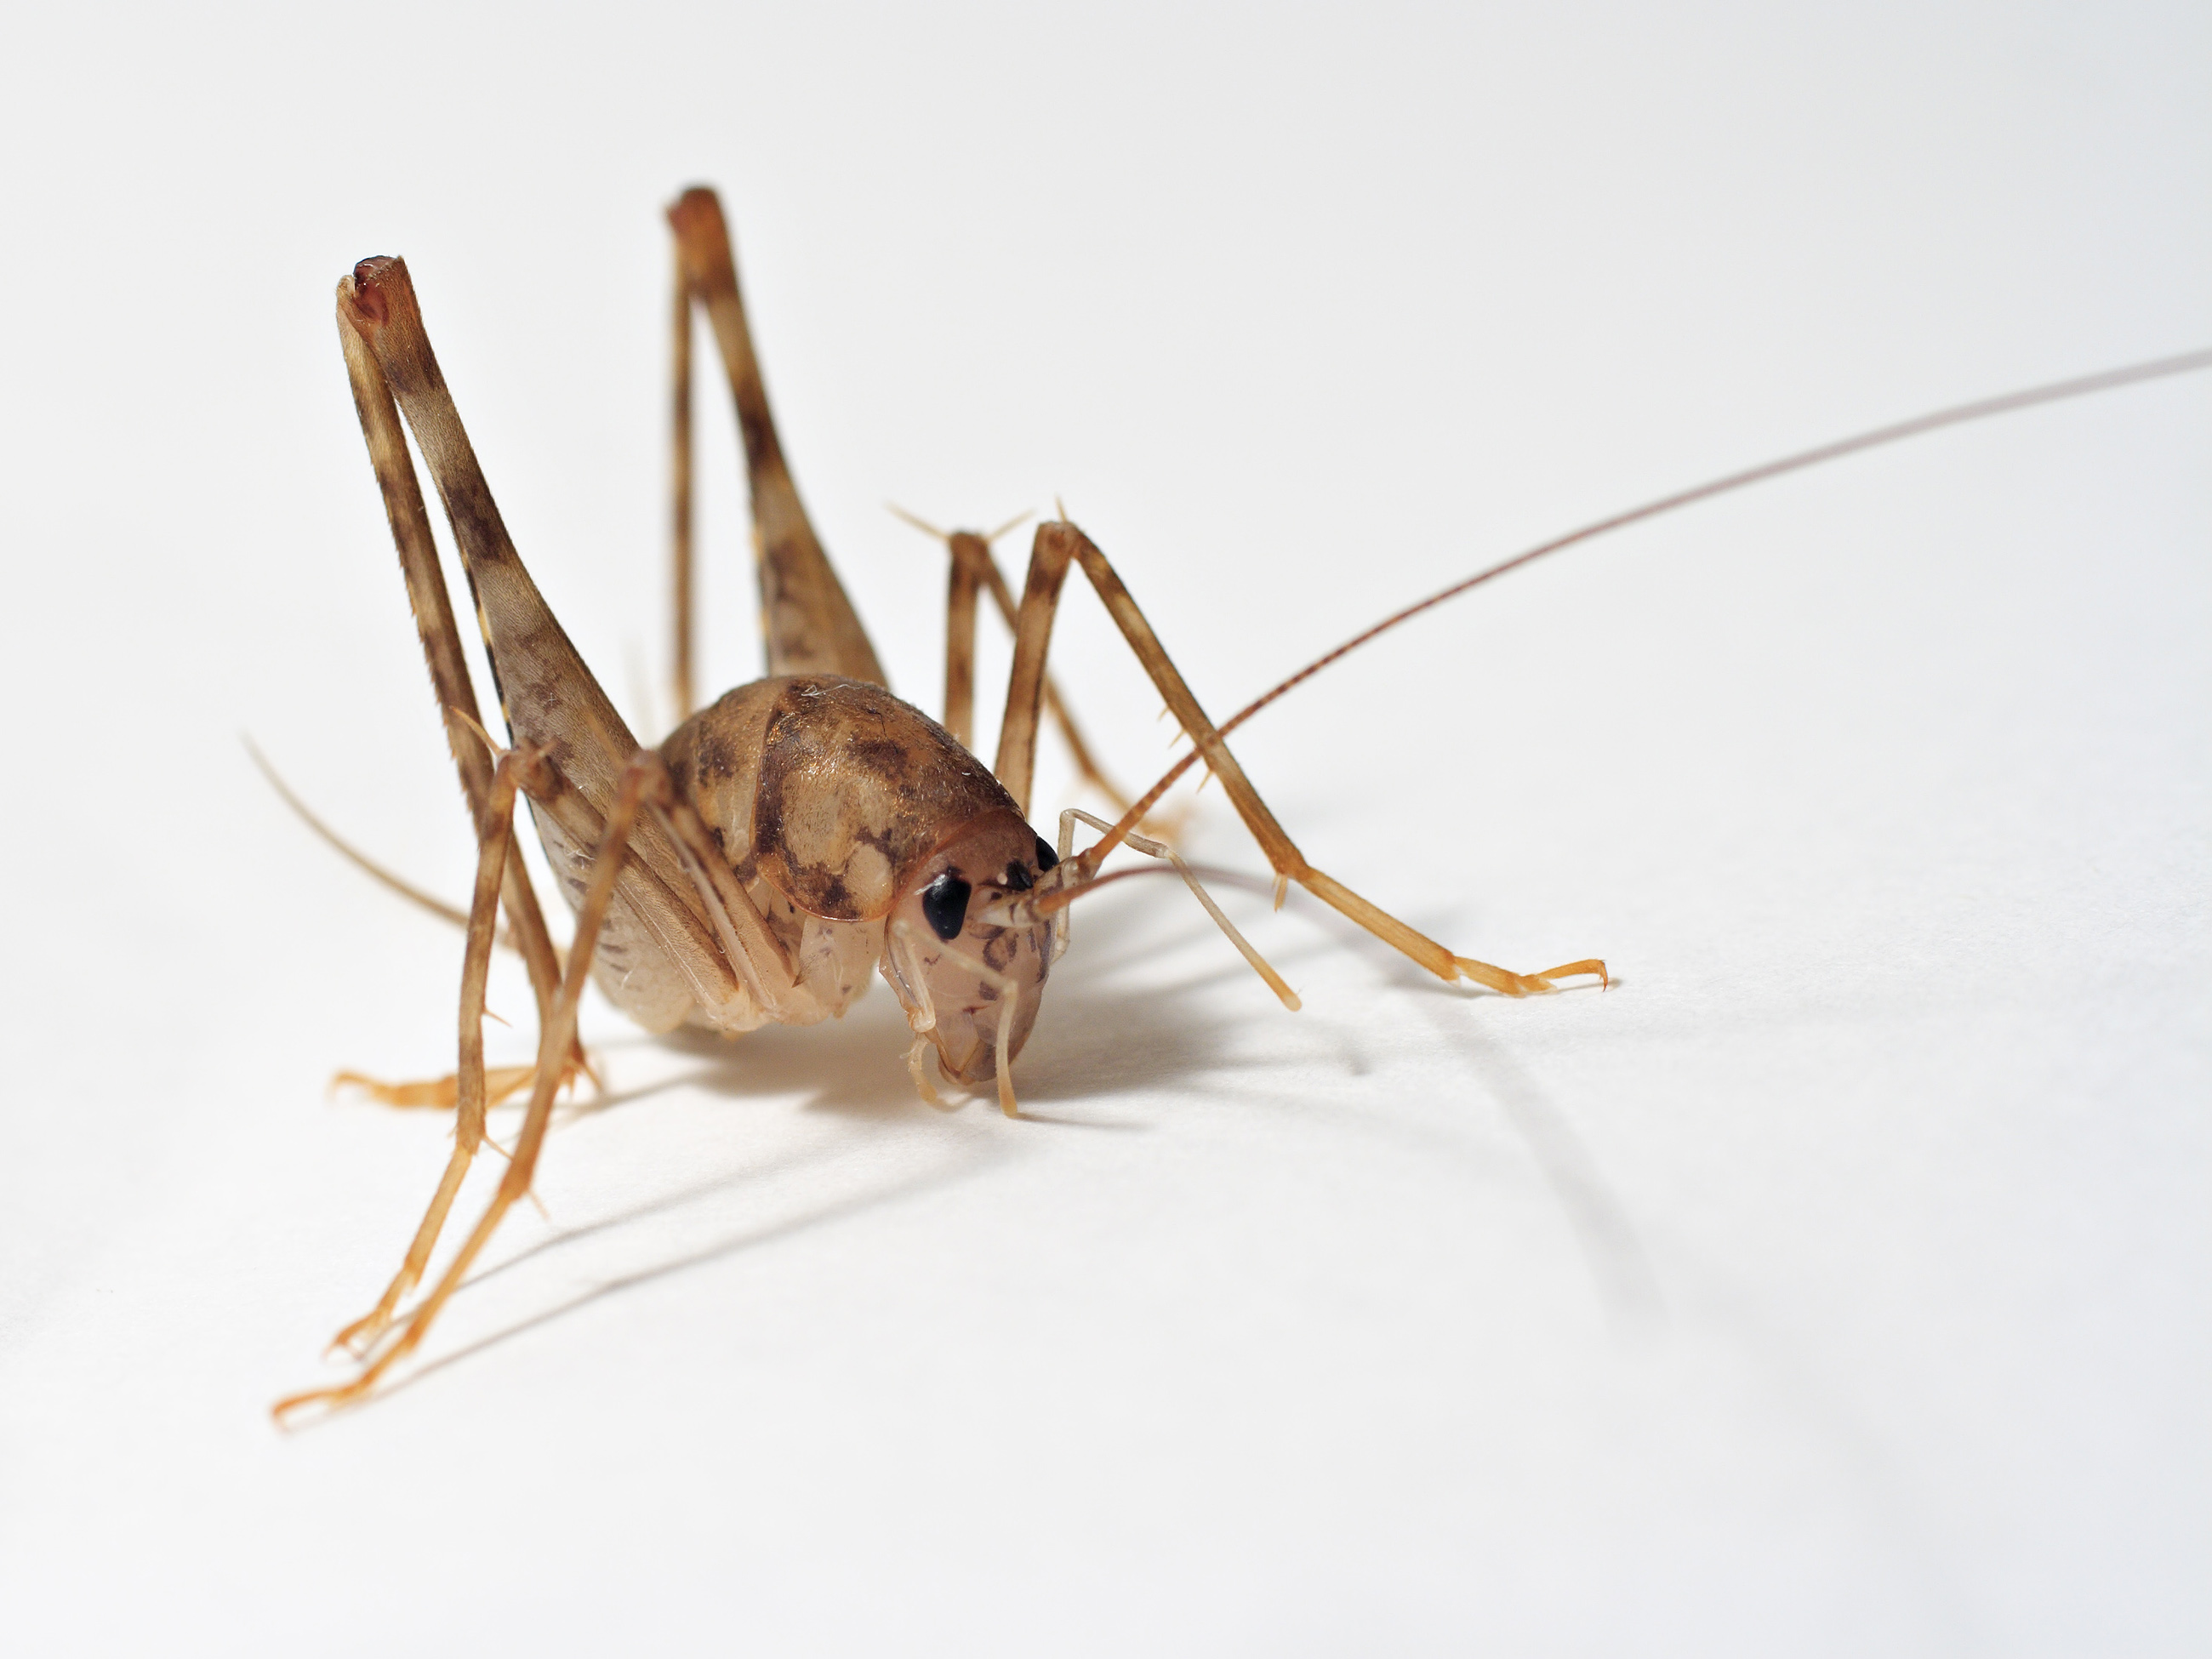 Cave Crickets